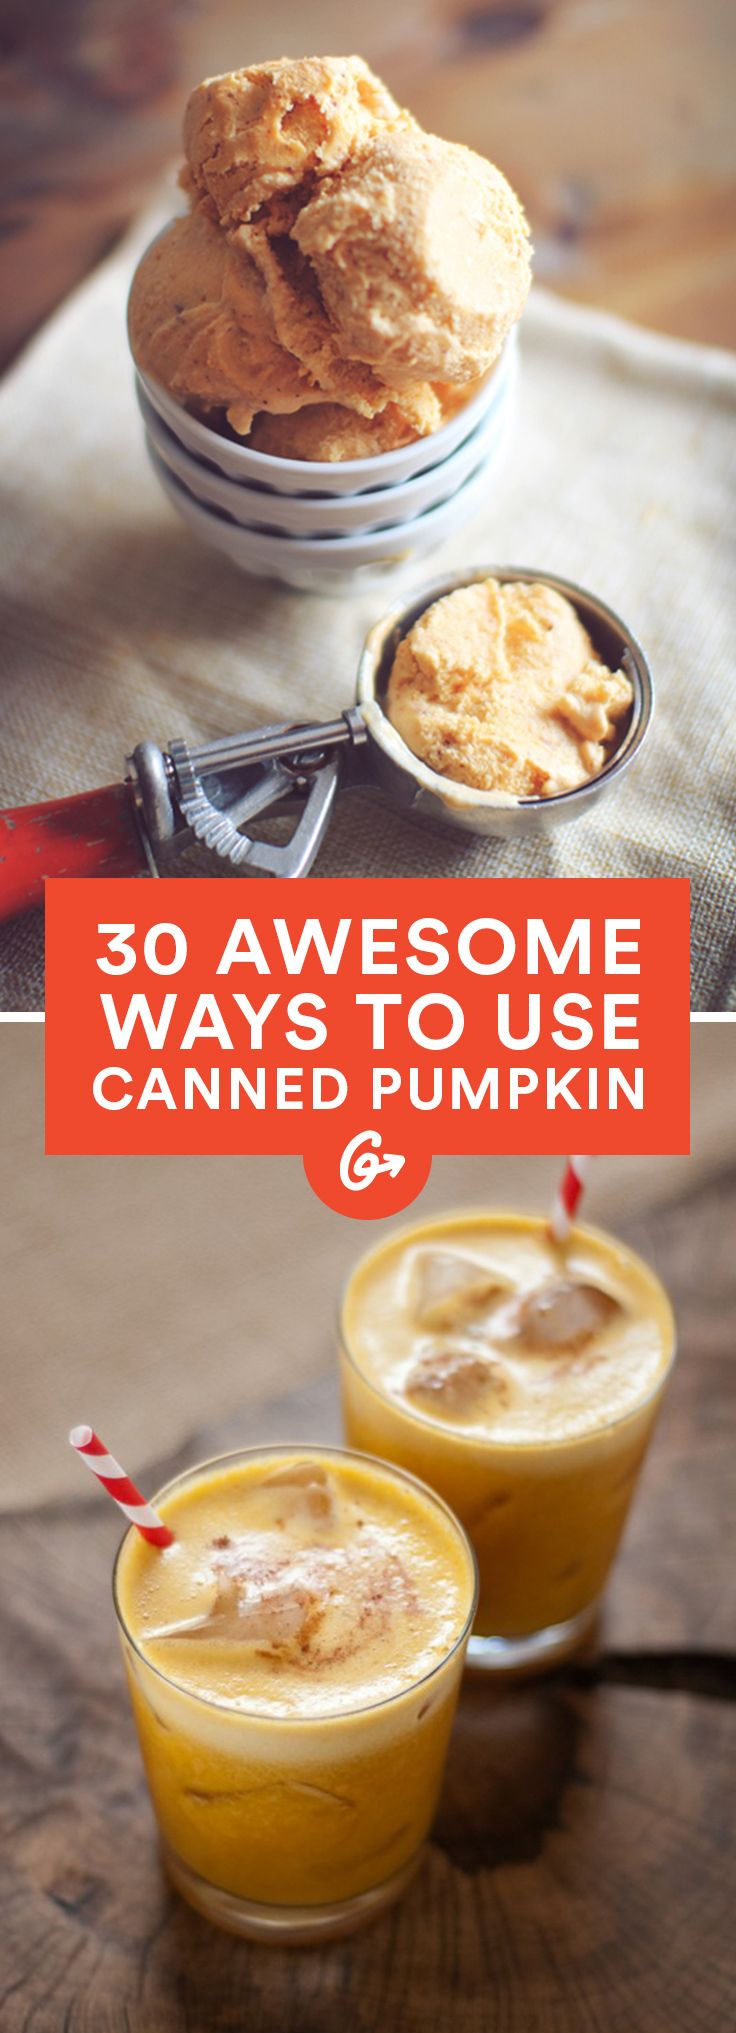 Pumpkin errrythang.  #healthy #pumpkin #recipes http://greatist.com/health/awesome-weird-healthy-recipes-canned-pumpkin